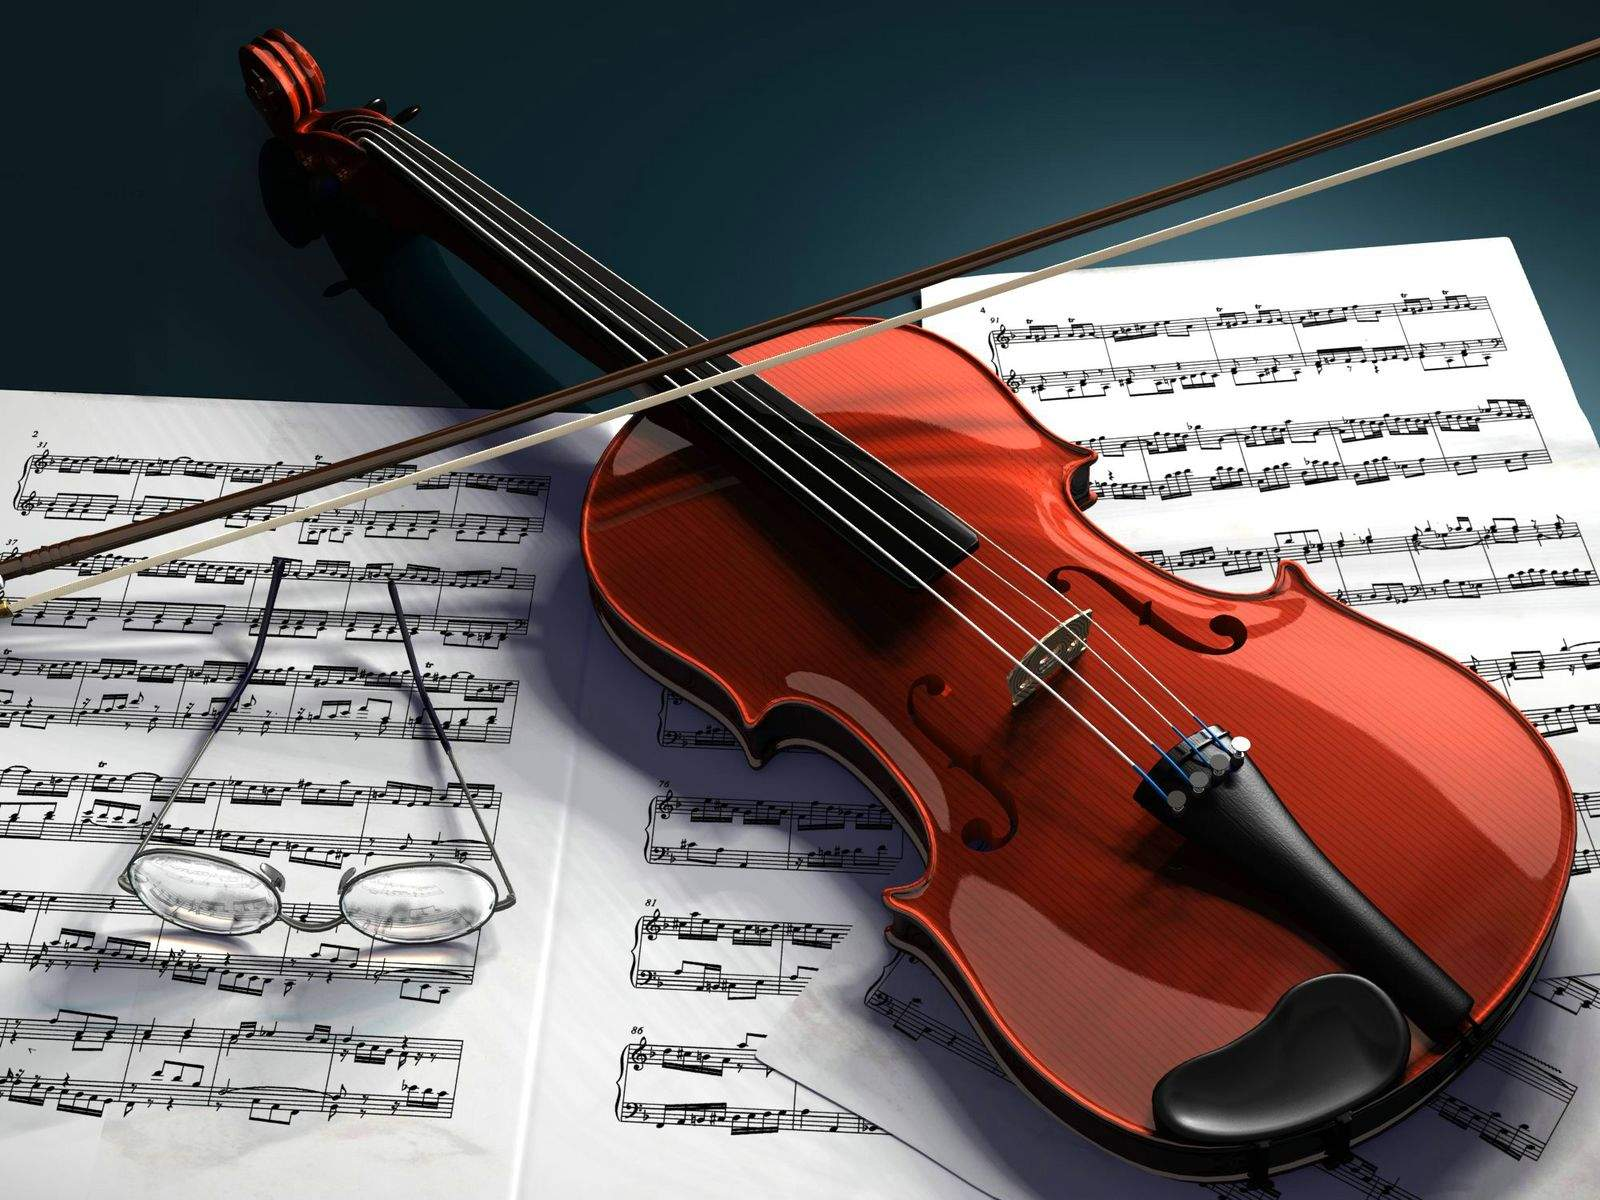 Awesome violin wallpaper collection